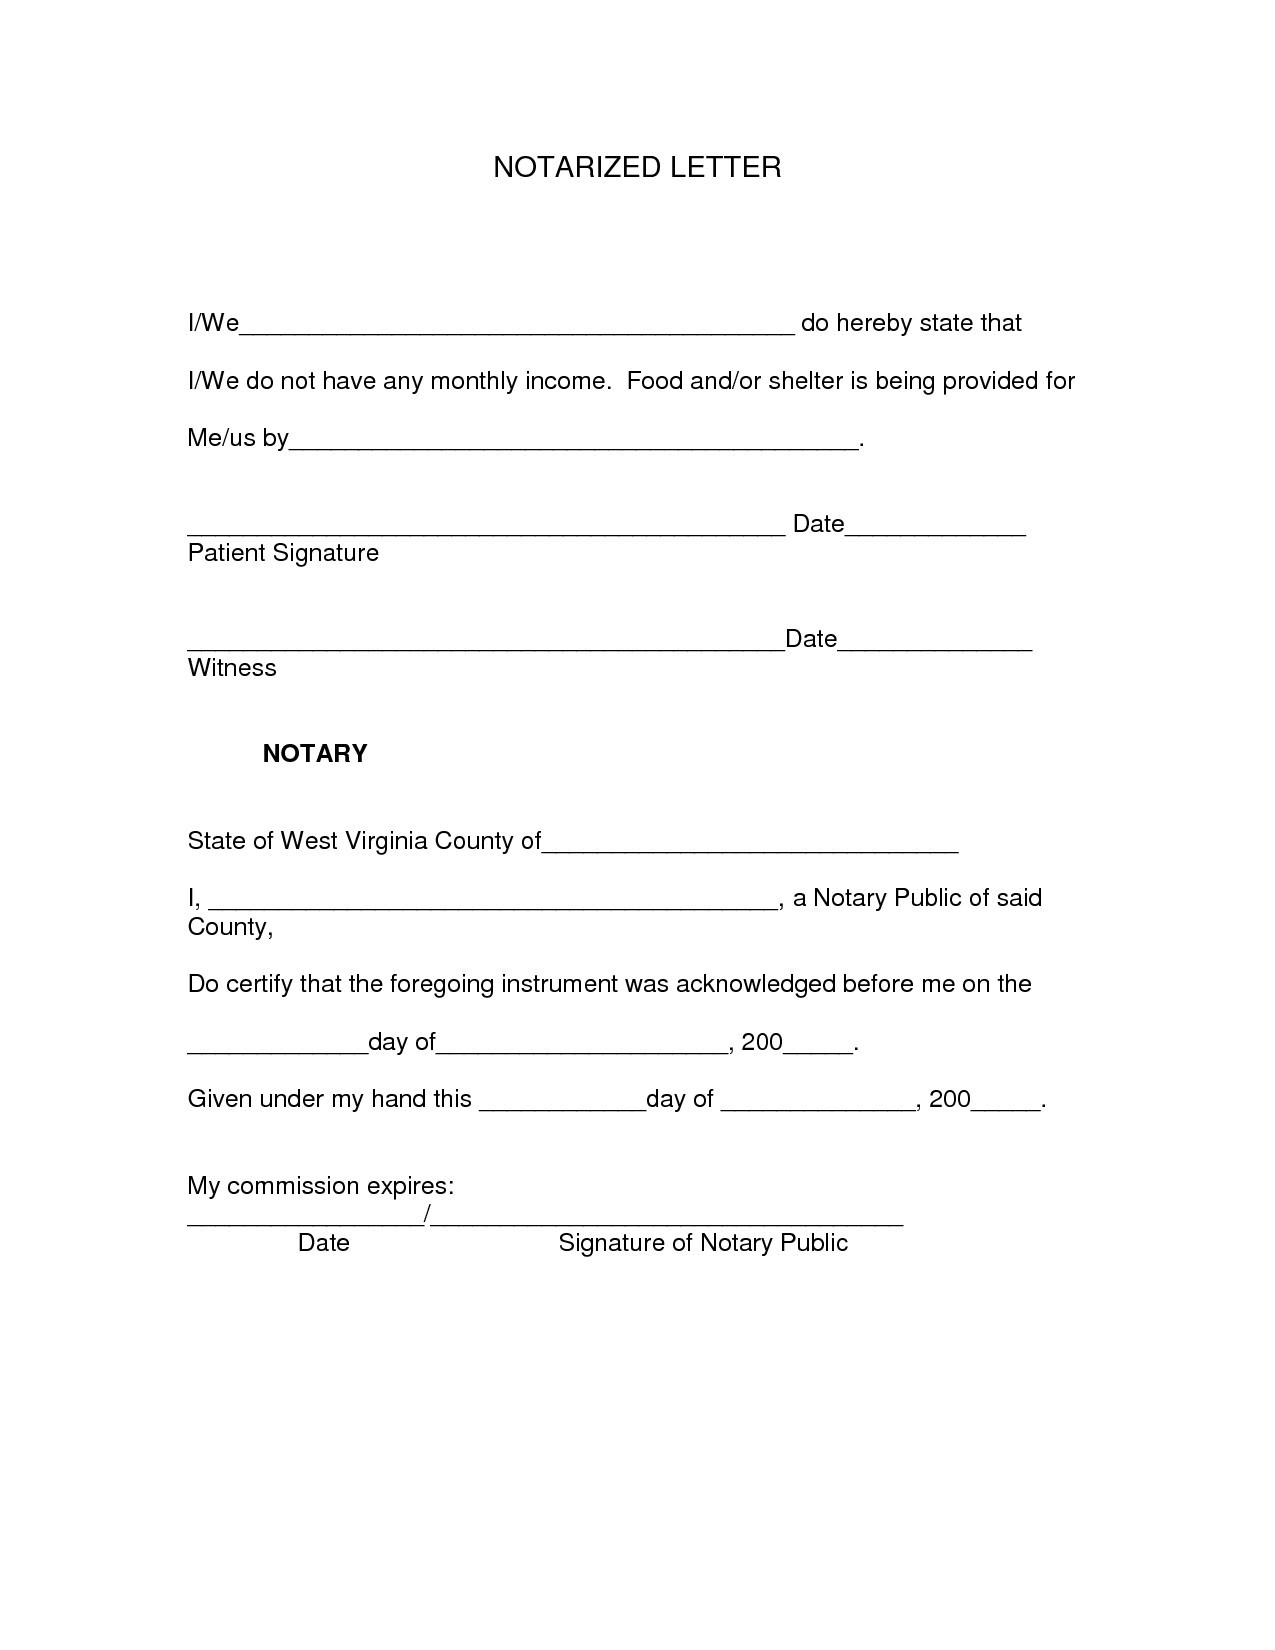 Notary Letter Template - How to Notarize A Letter How to Write A Notary Letter Luxury Sample